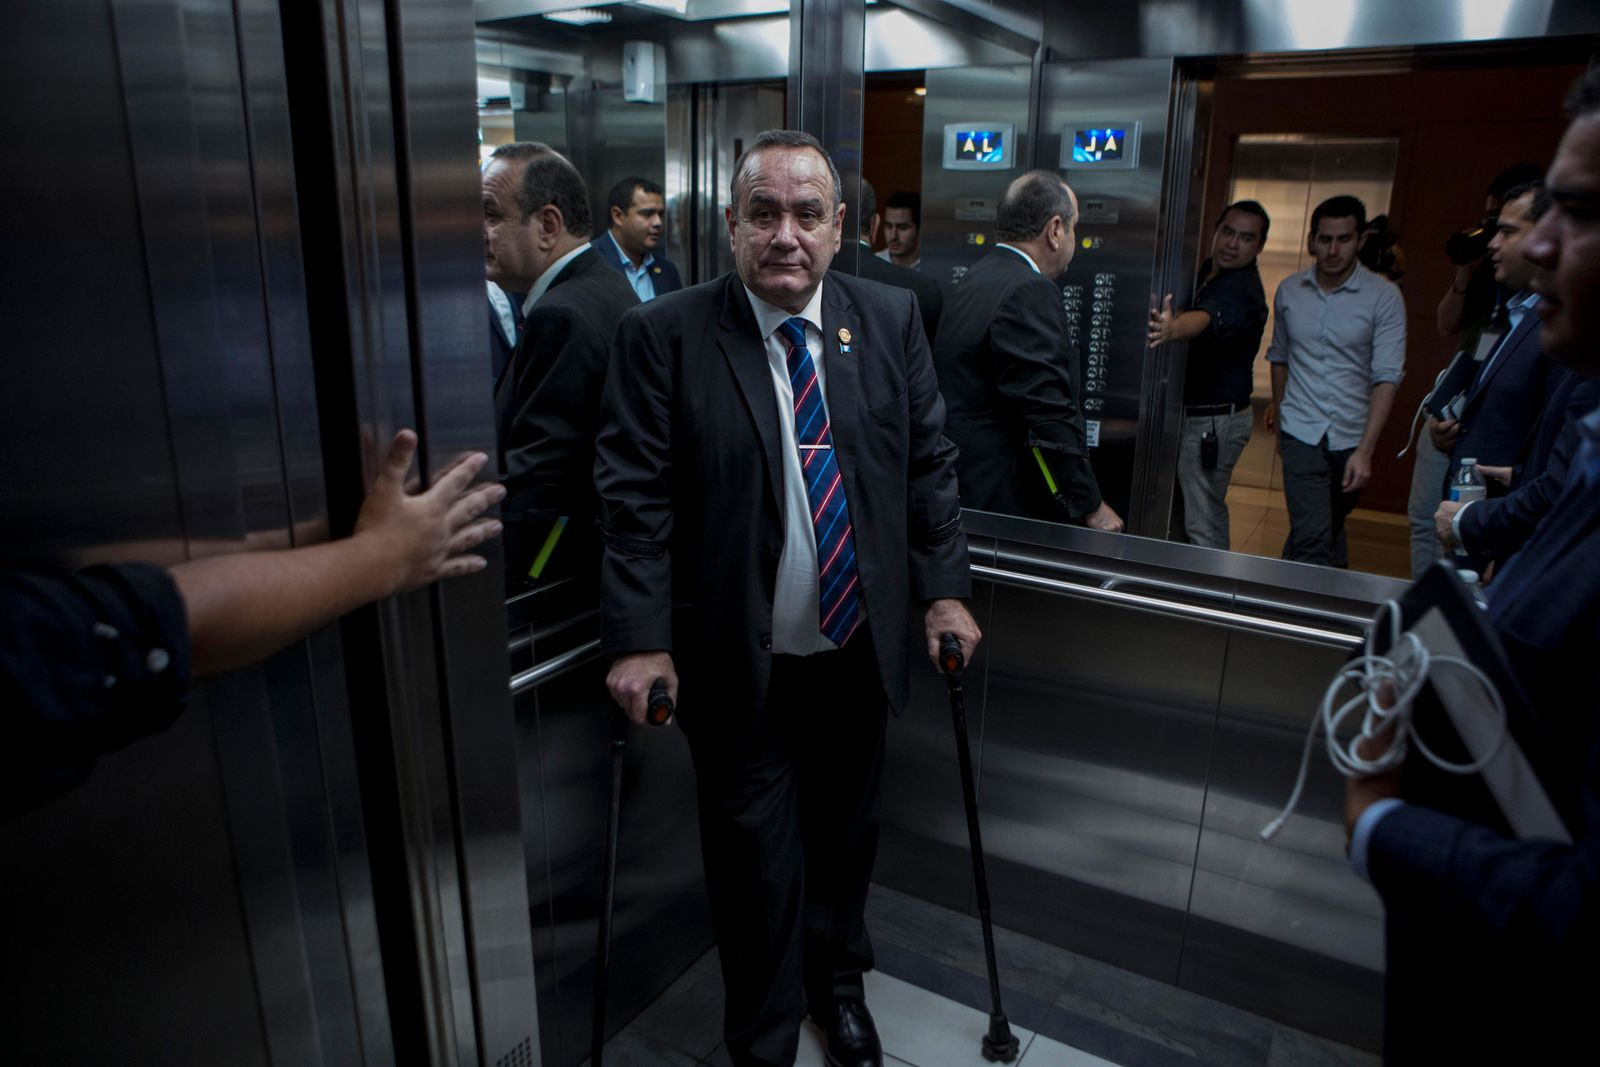 Guatemala's President-elect Alejandro Giammattei stands in an elevator as he arrives for an interview in Guatemala City, Tuesday, Aug. 13, 2019.{ } (AP Photo/Oliver de Ros)